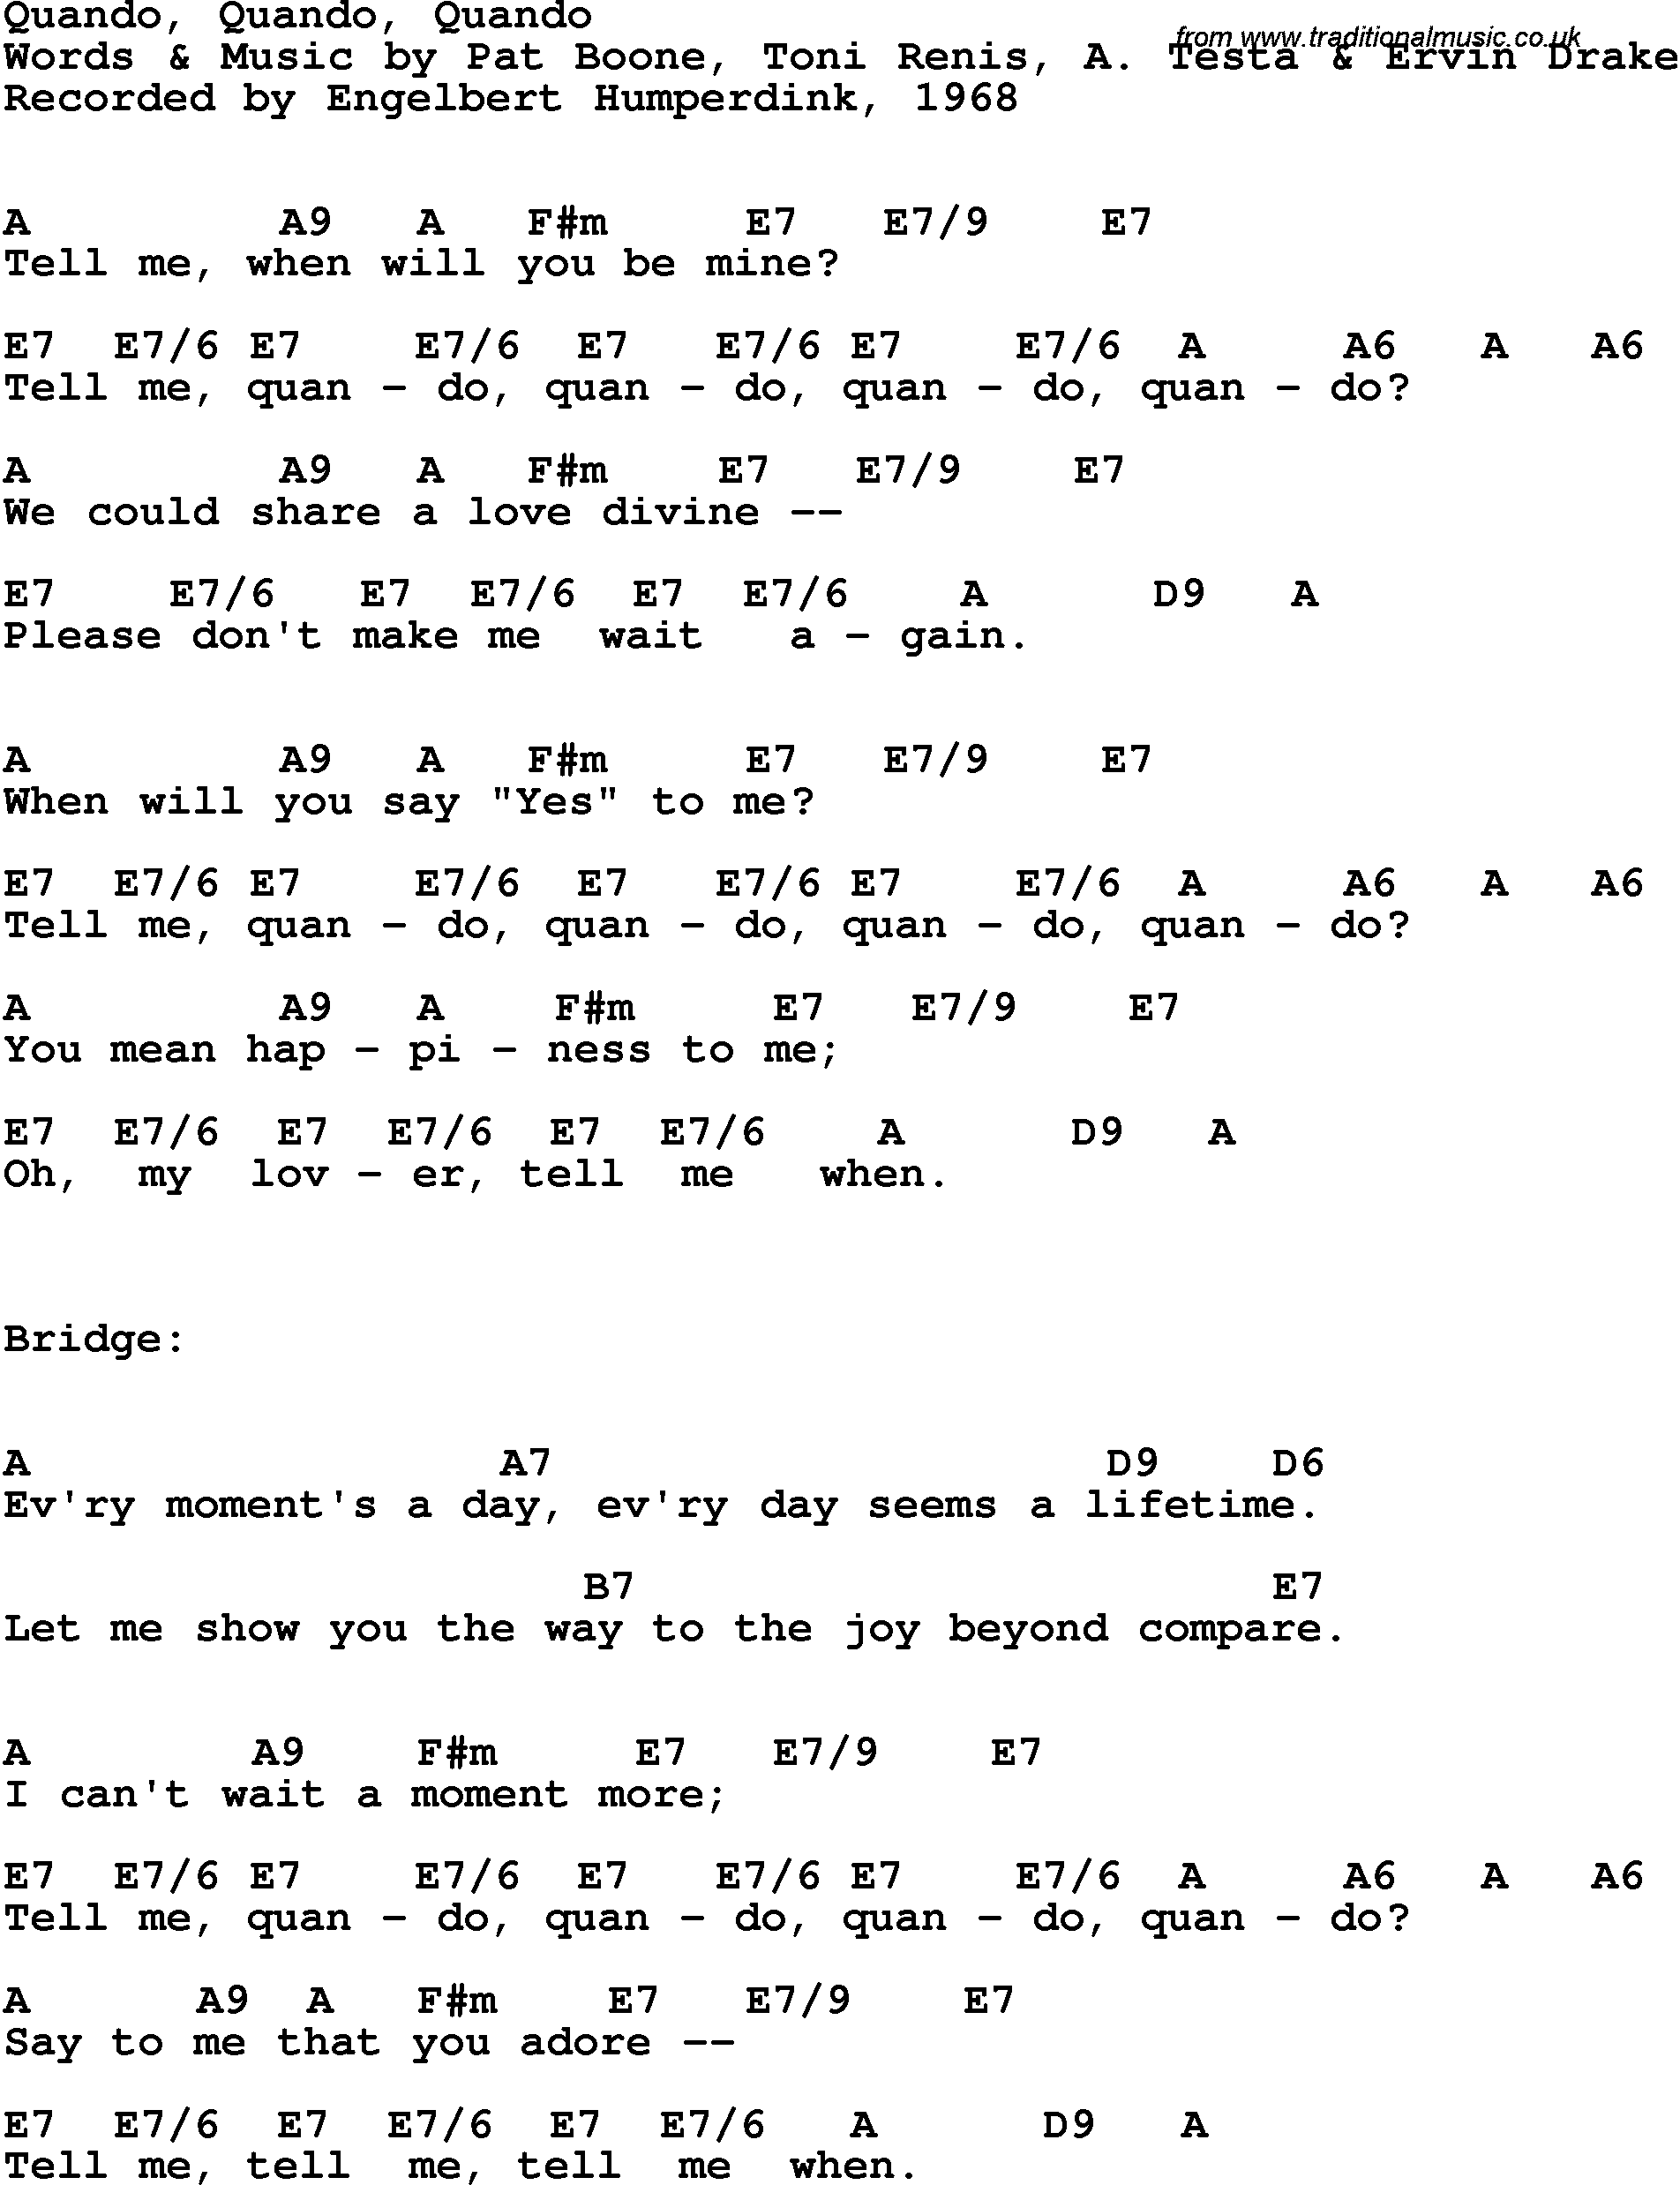 Song Lyrics With Guitar Chords For Quando Quando Quando